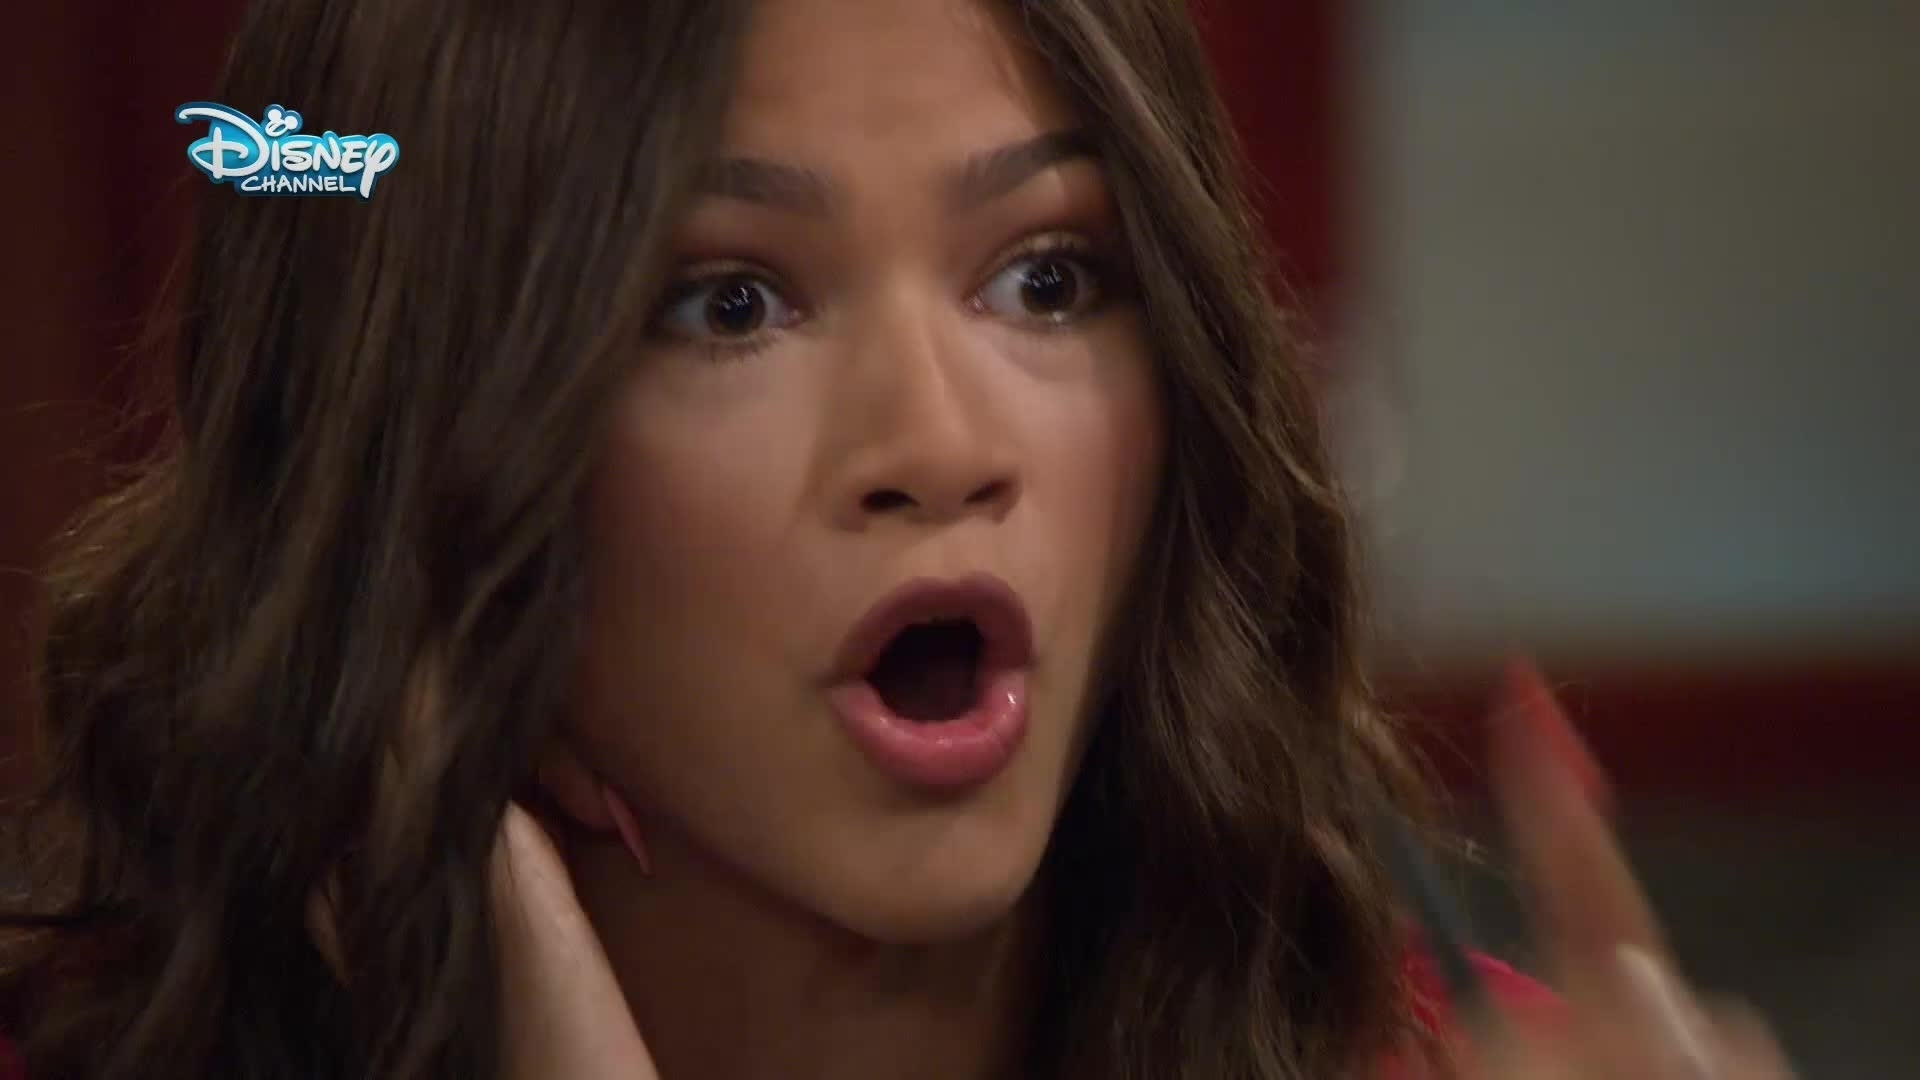 K.C. Undercover - Was passiert in Staffel 2?